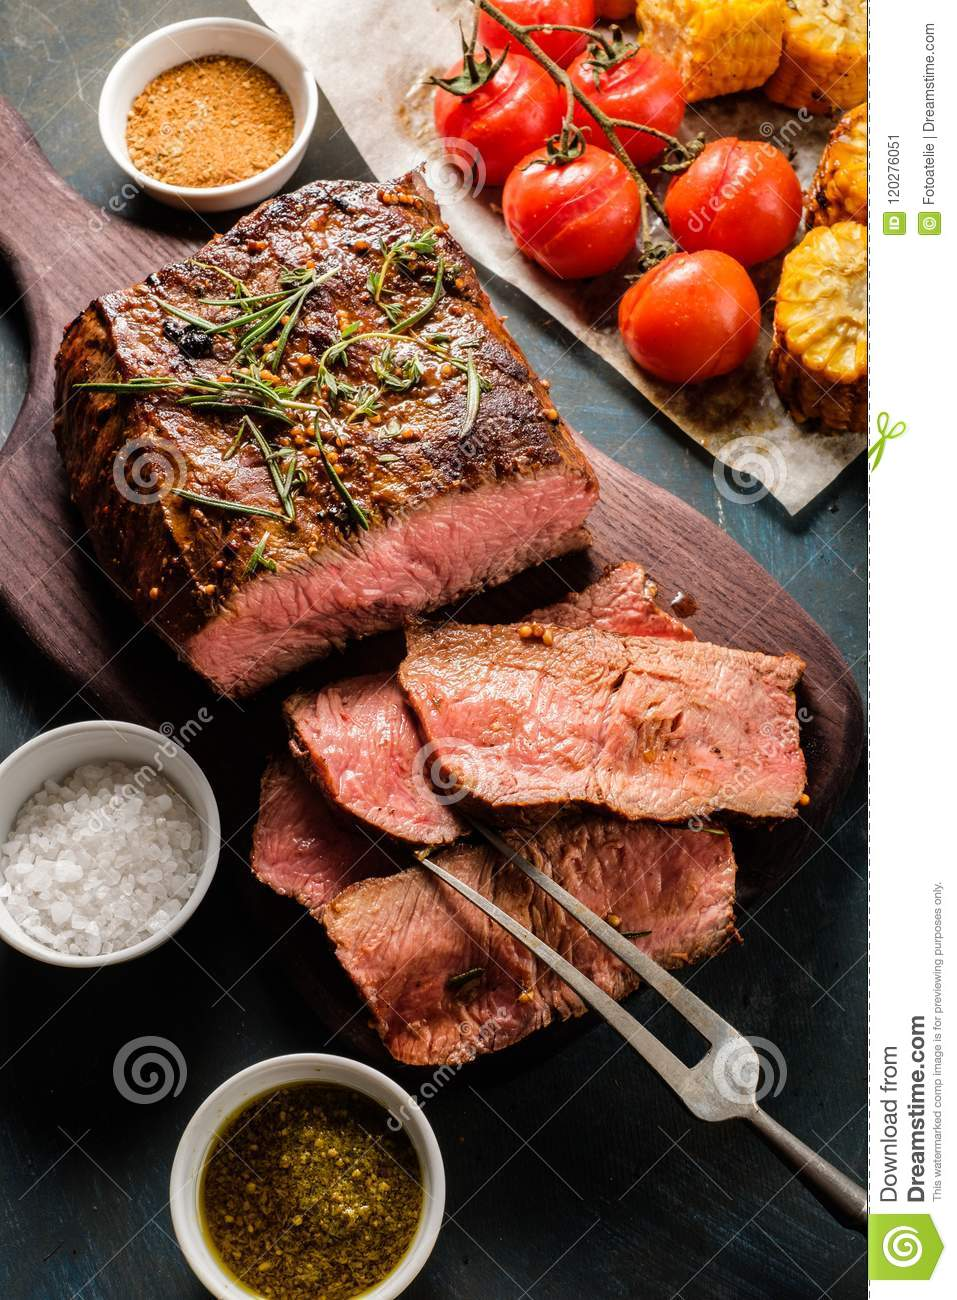 Download Sliced Roast Beef On Cutting Board With Grilled Vegetables. Top Stock Image - Image of beef, angus: 120276051